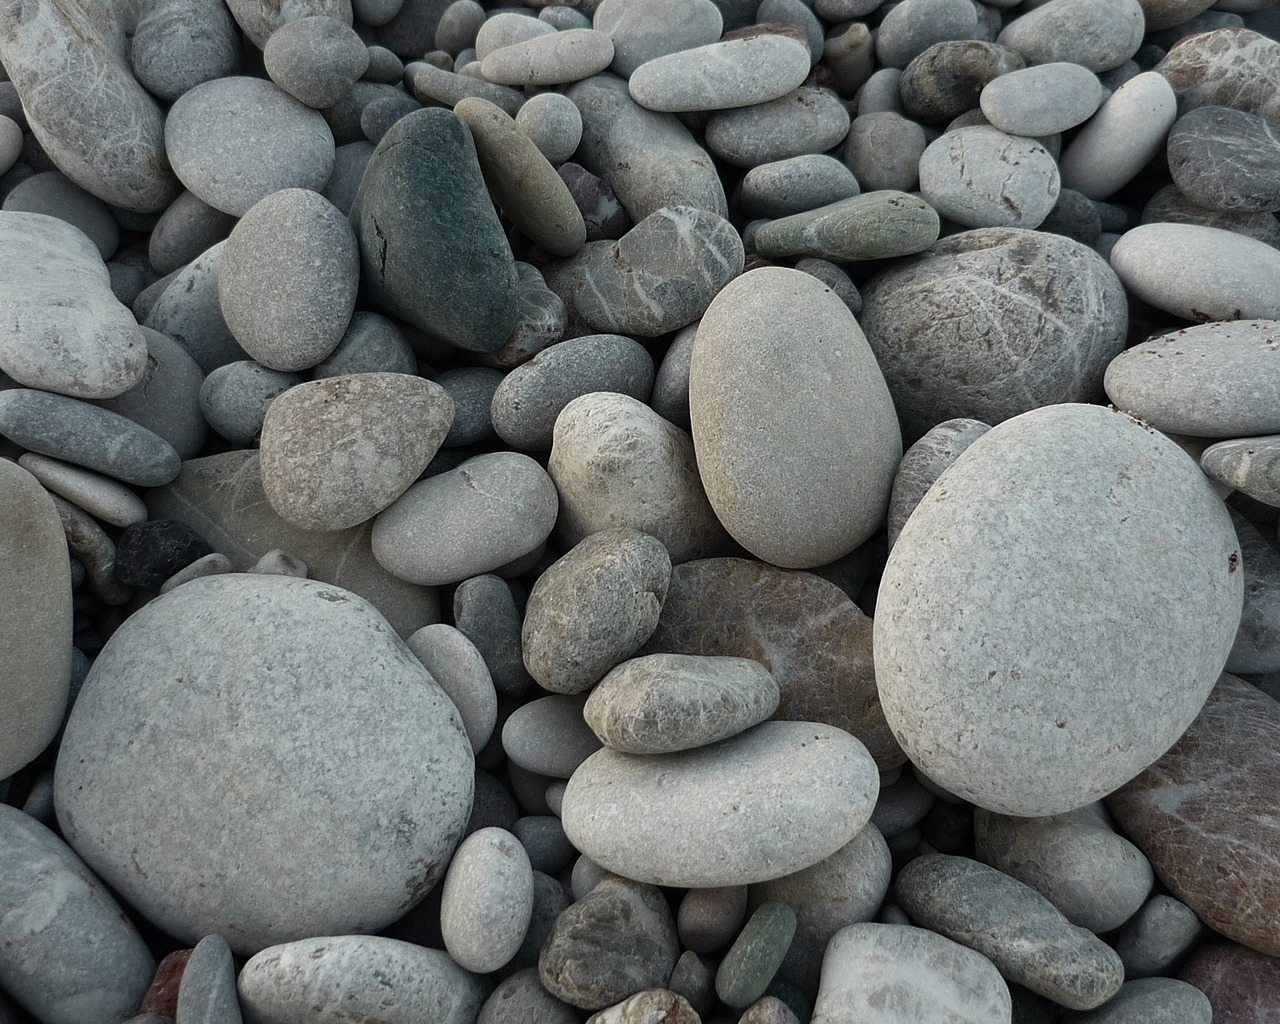 stones wallpaper other nature wallpapers in jpg format for free download